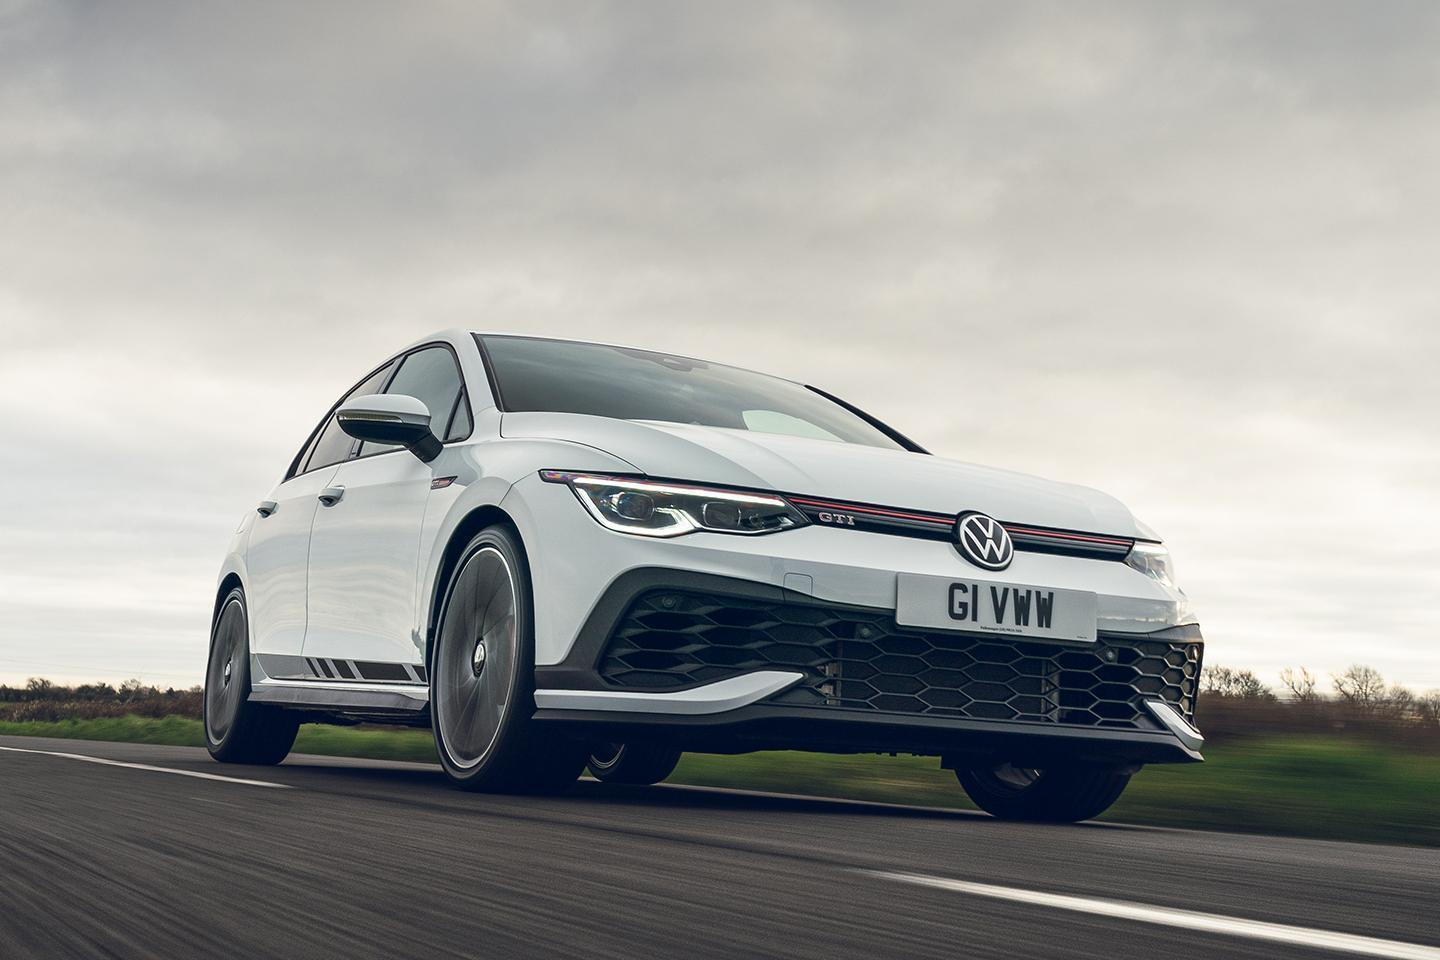 2021 Vw Golf Gti Clubsport Uk Review Pistonheads Uk